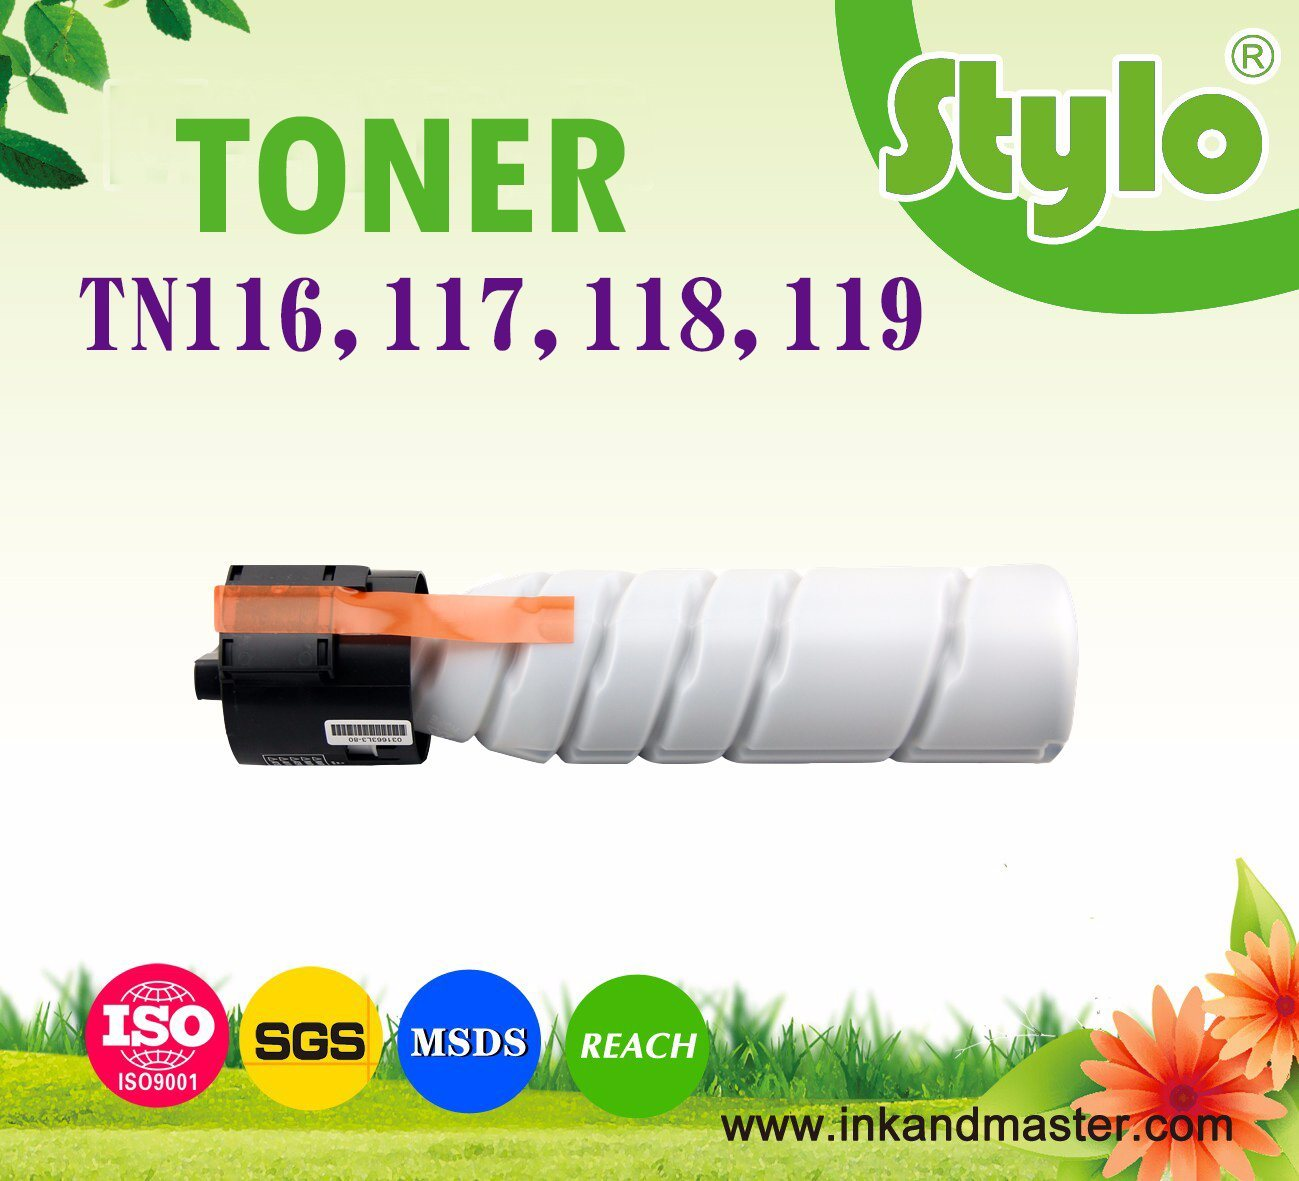 Tn-118 Tn-119 Printer Toner Cartridge